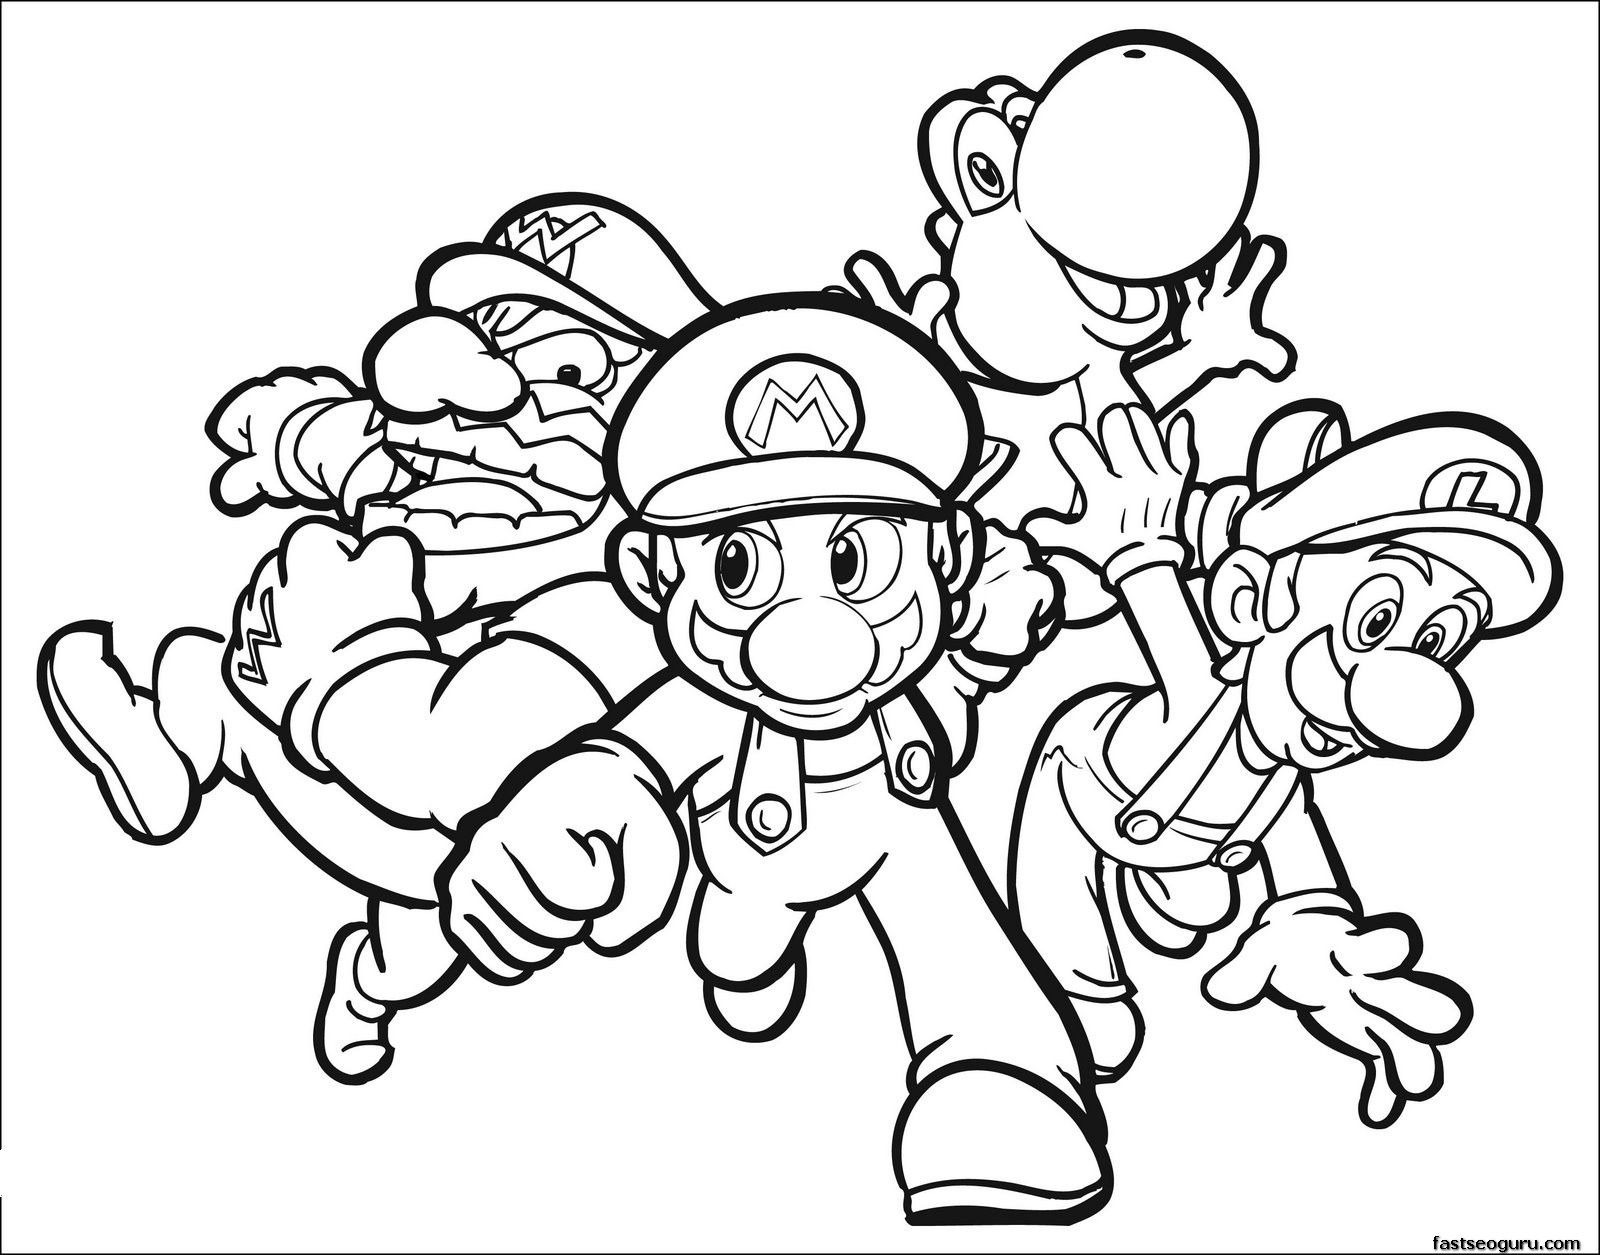 1600x1255 Beautiful Cartoon Network Coloring Pages Cartoon Network Coloring